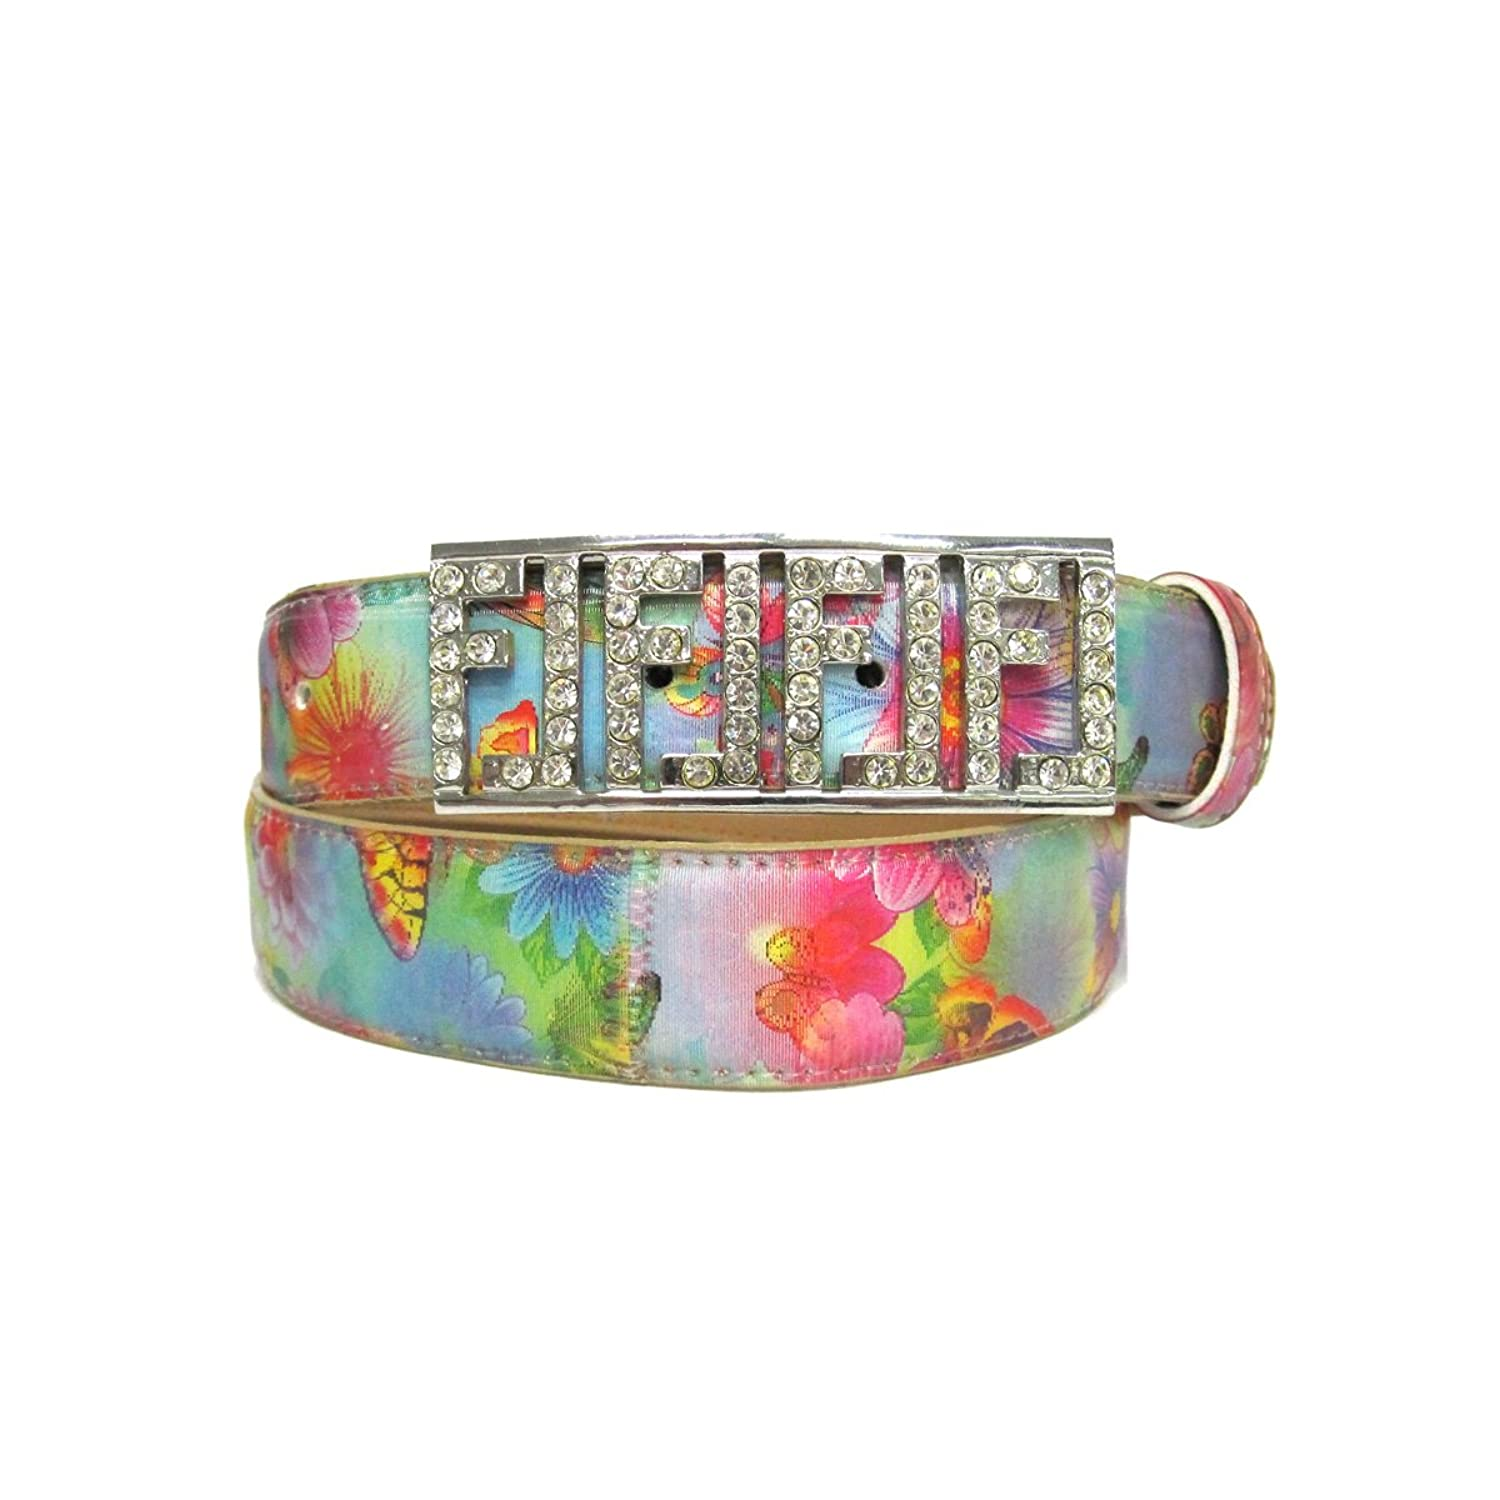 "1 1/4"" Women's Love Life Buckle with Rhinestones on Quality Floral 3D Print Belt"